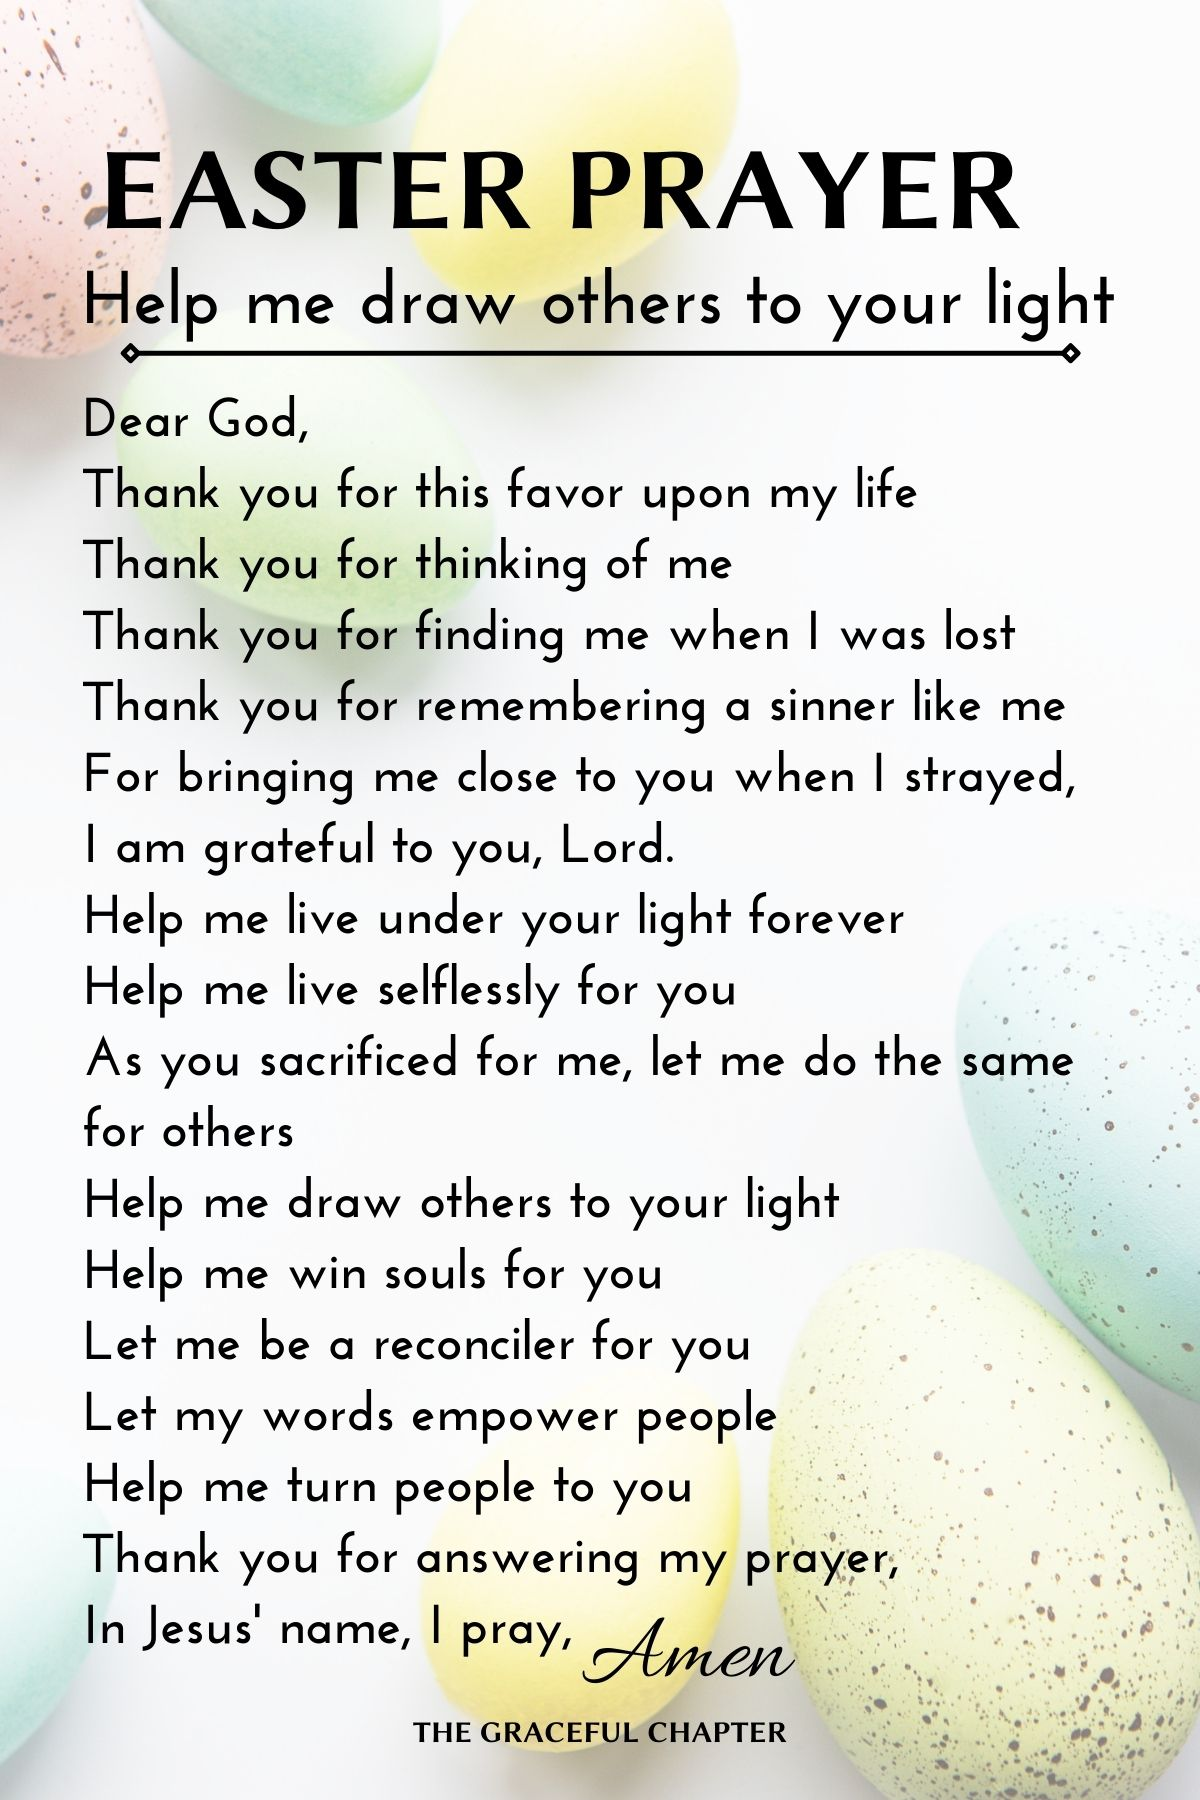 easter prayer - help me draw others to your light